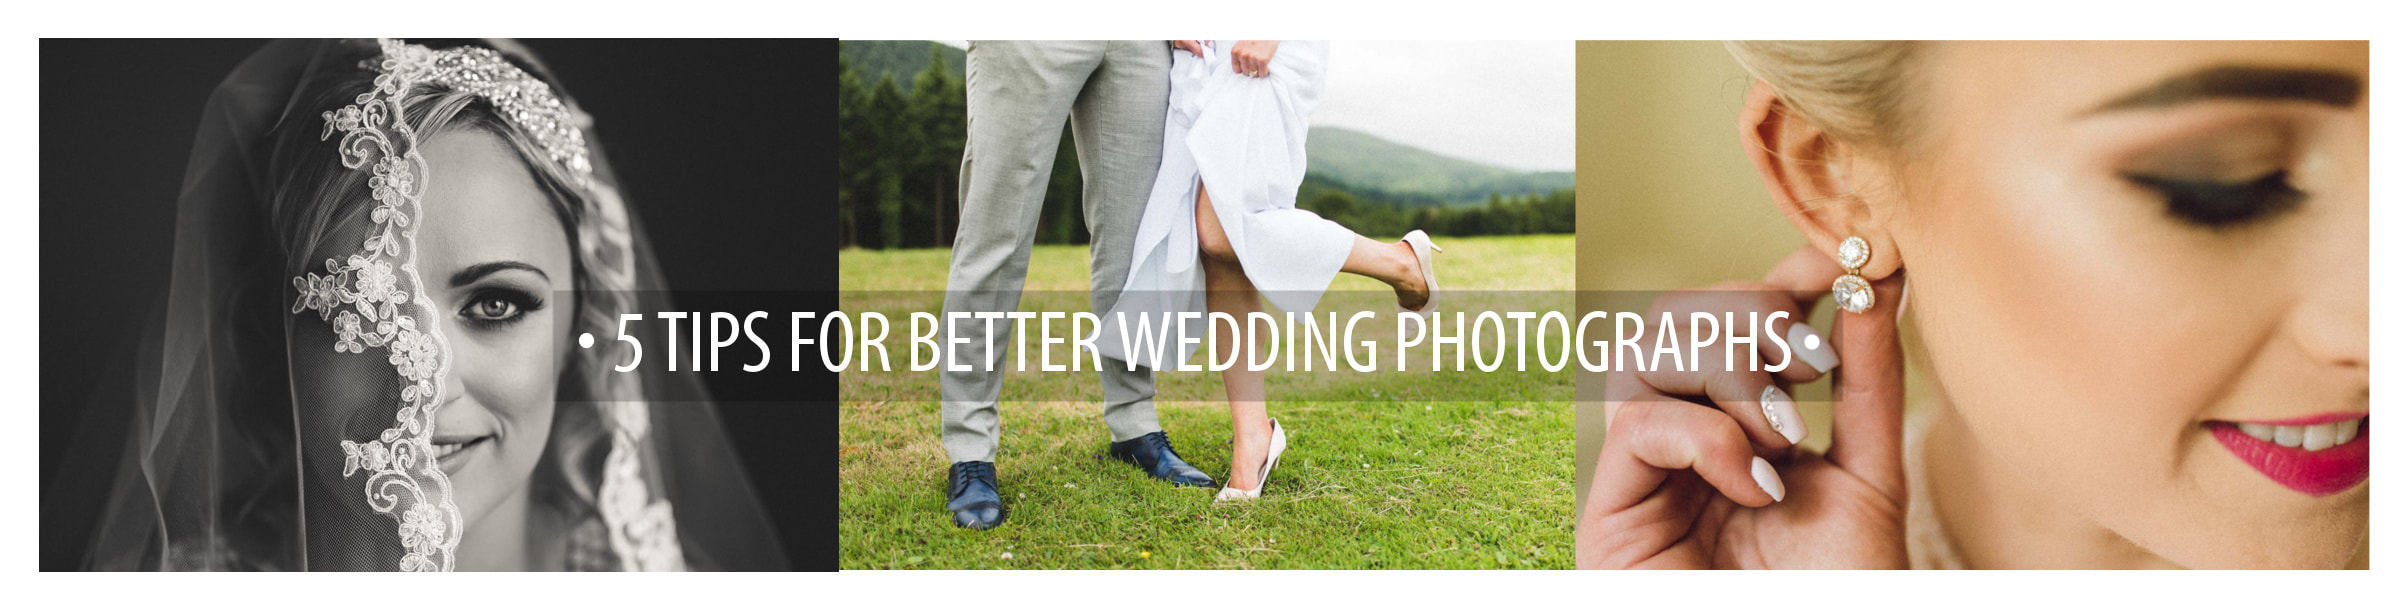 These Tips Are Aimed To Give You The Bride Groom A Greater Understanding Of What Should Be Prioritised When It Comes Your Wedding Photography